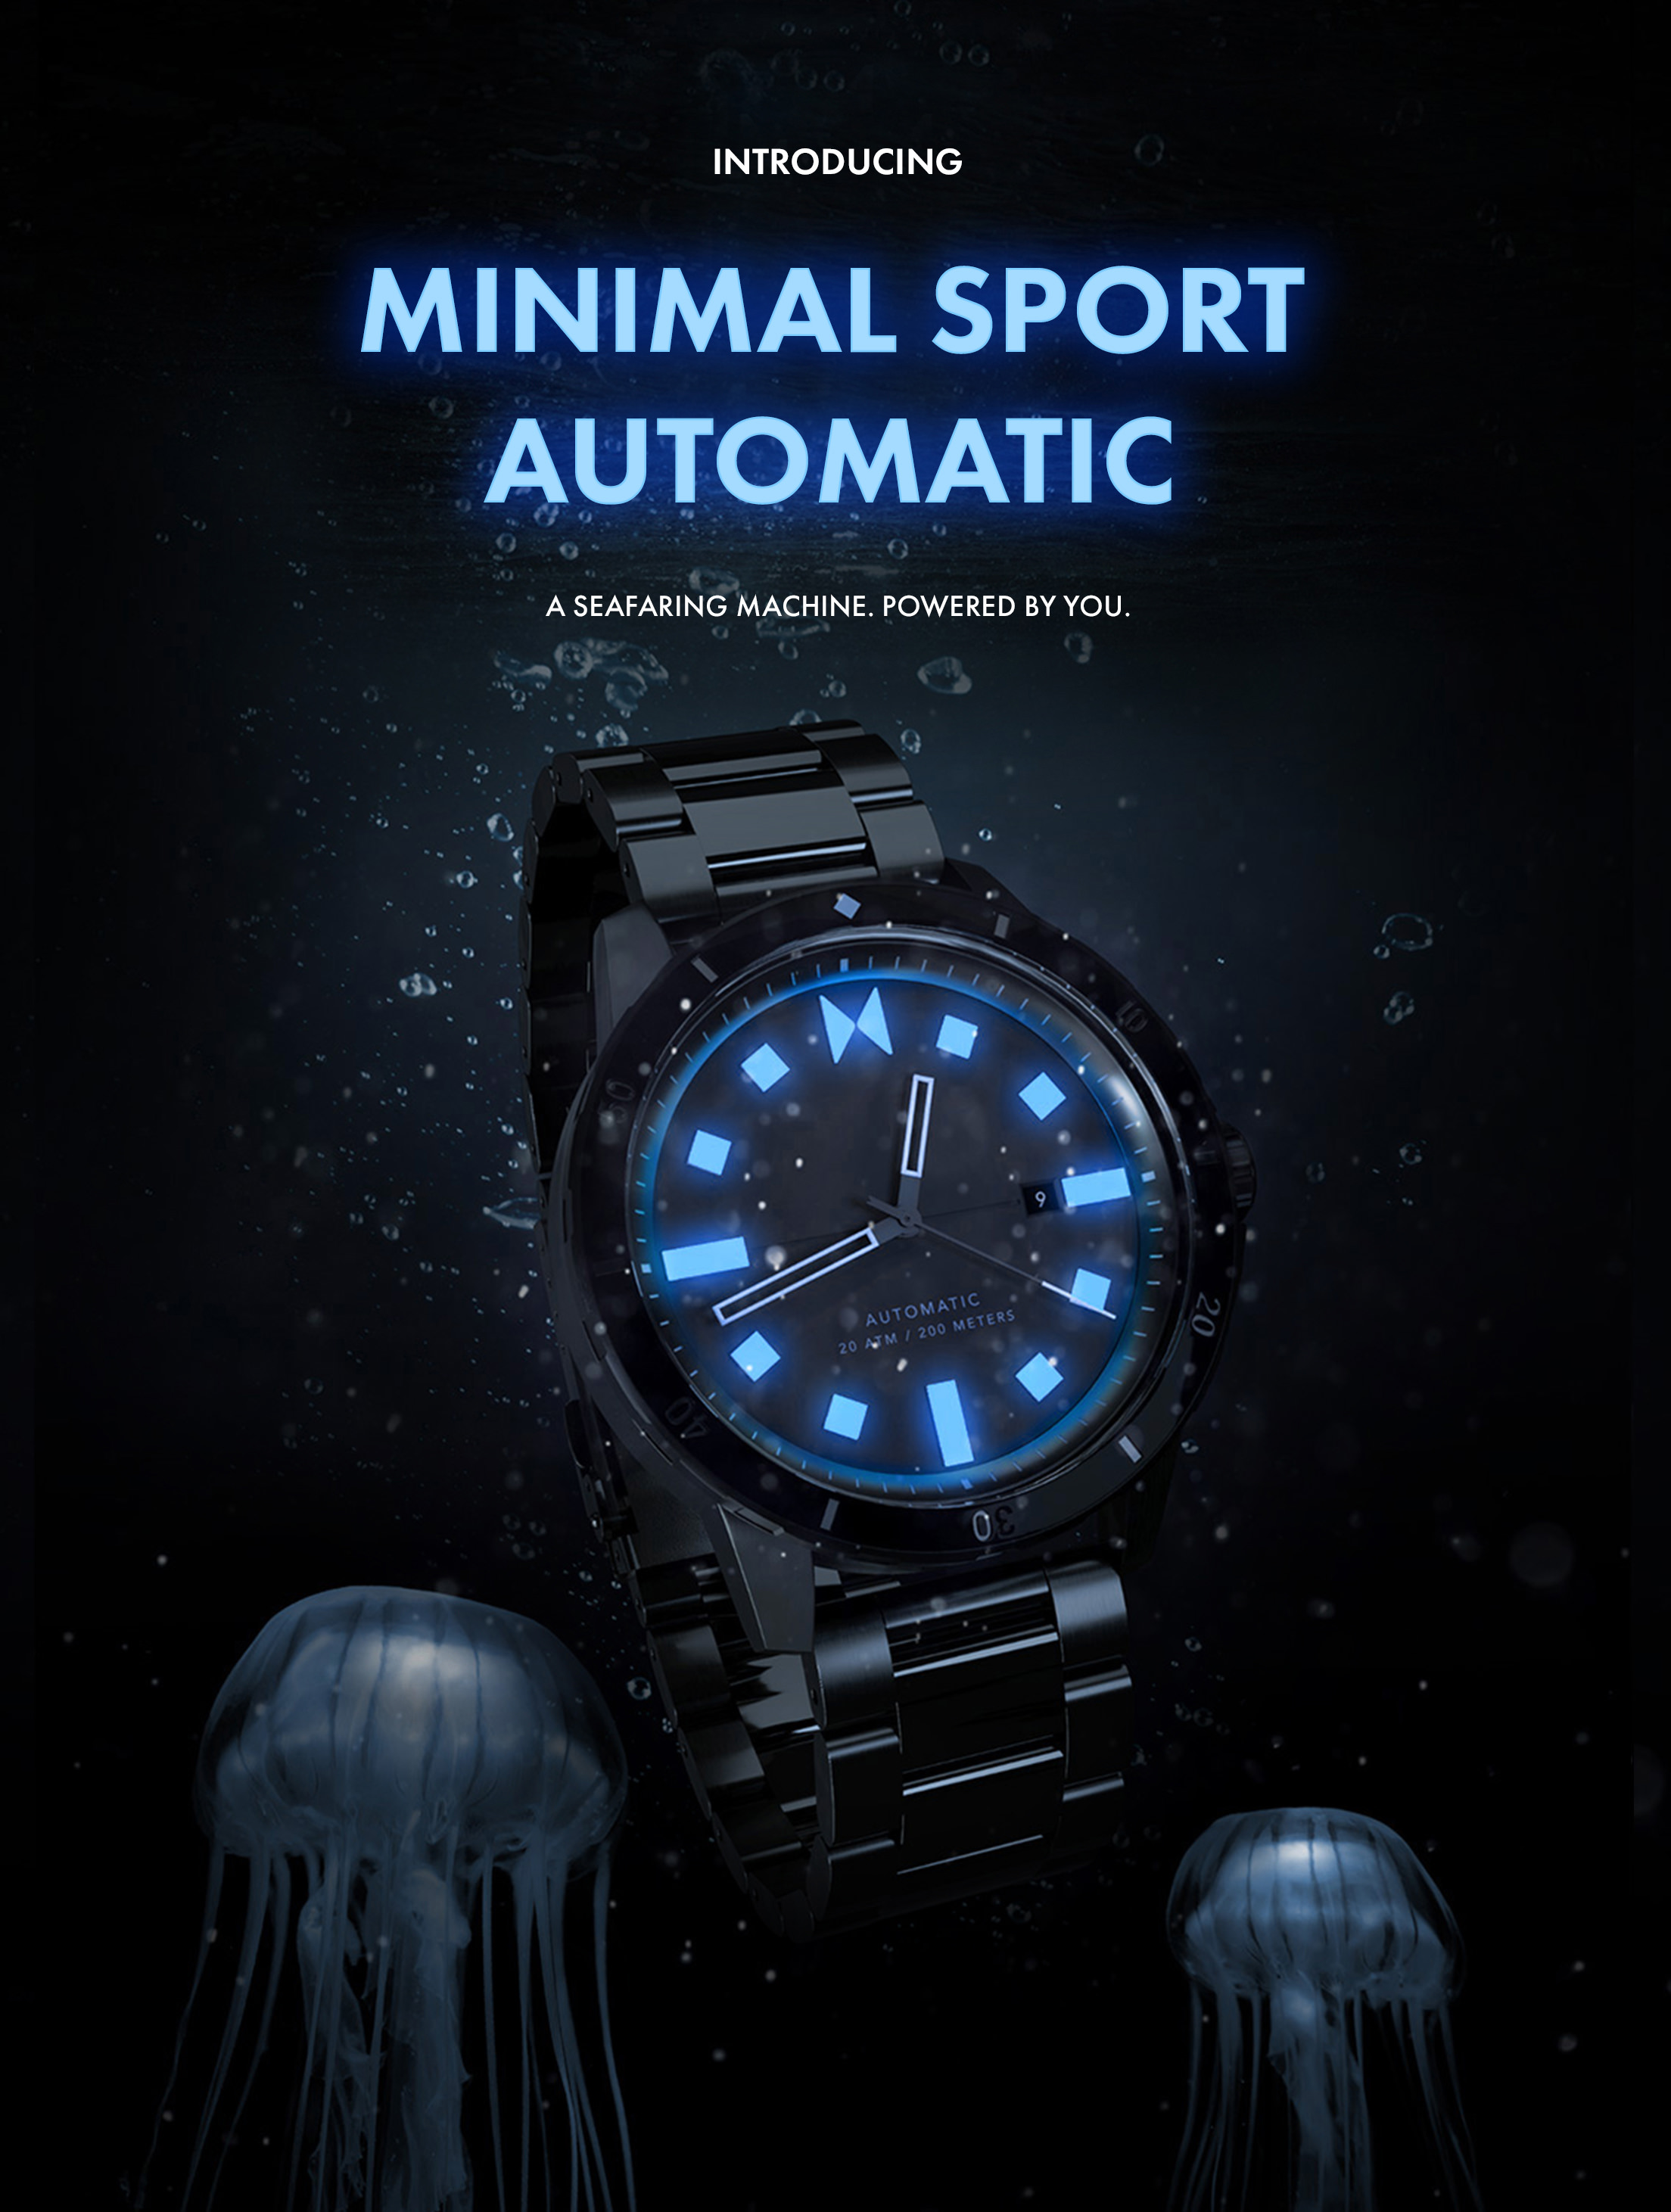 Introducing Minimal Sport Automatic. A seafaring machine. Powered by you.